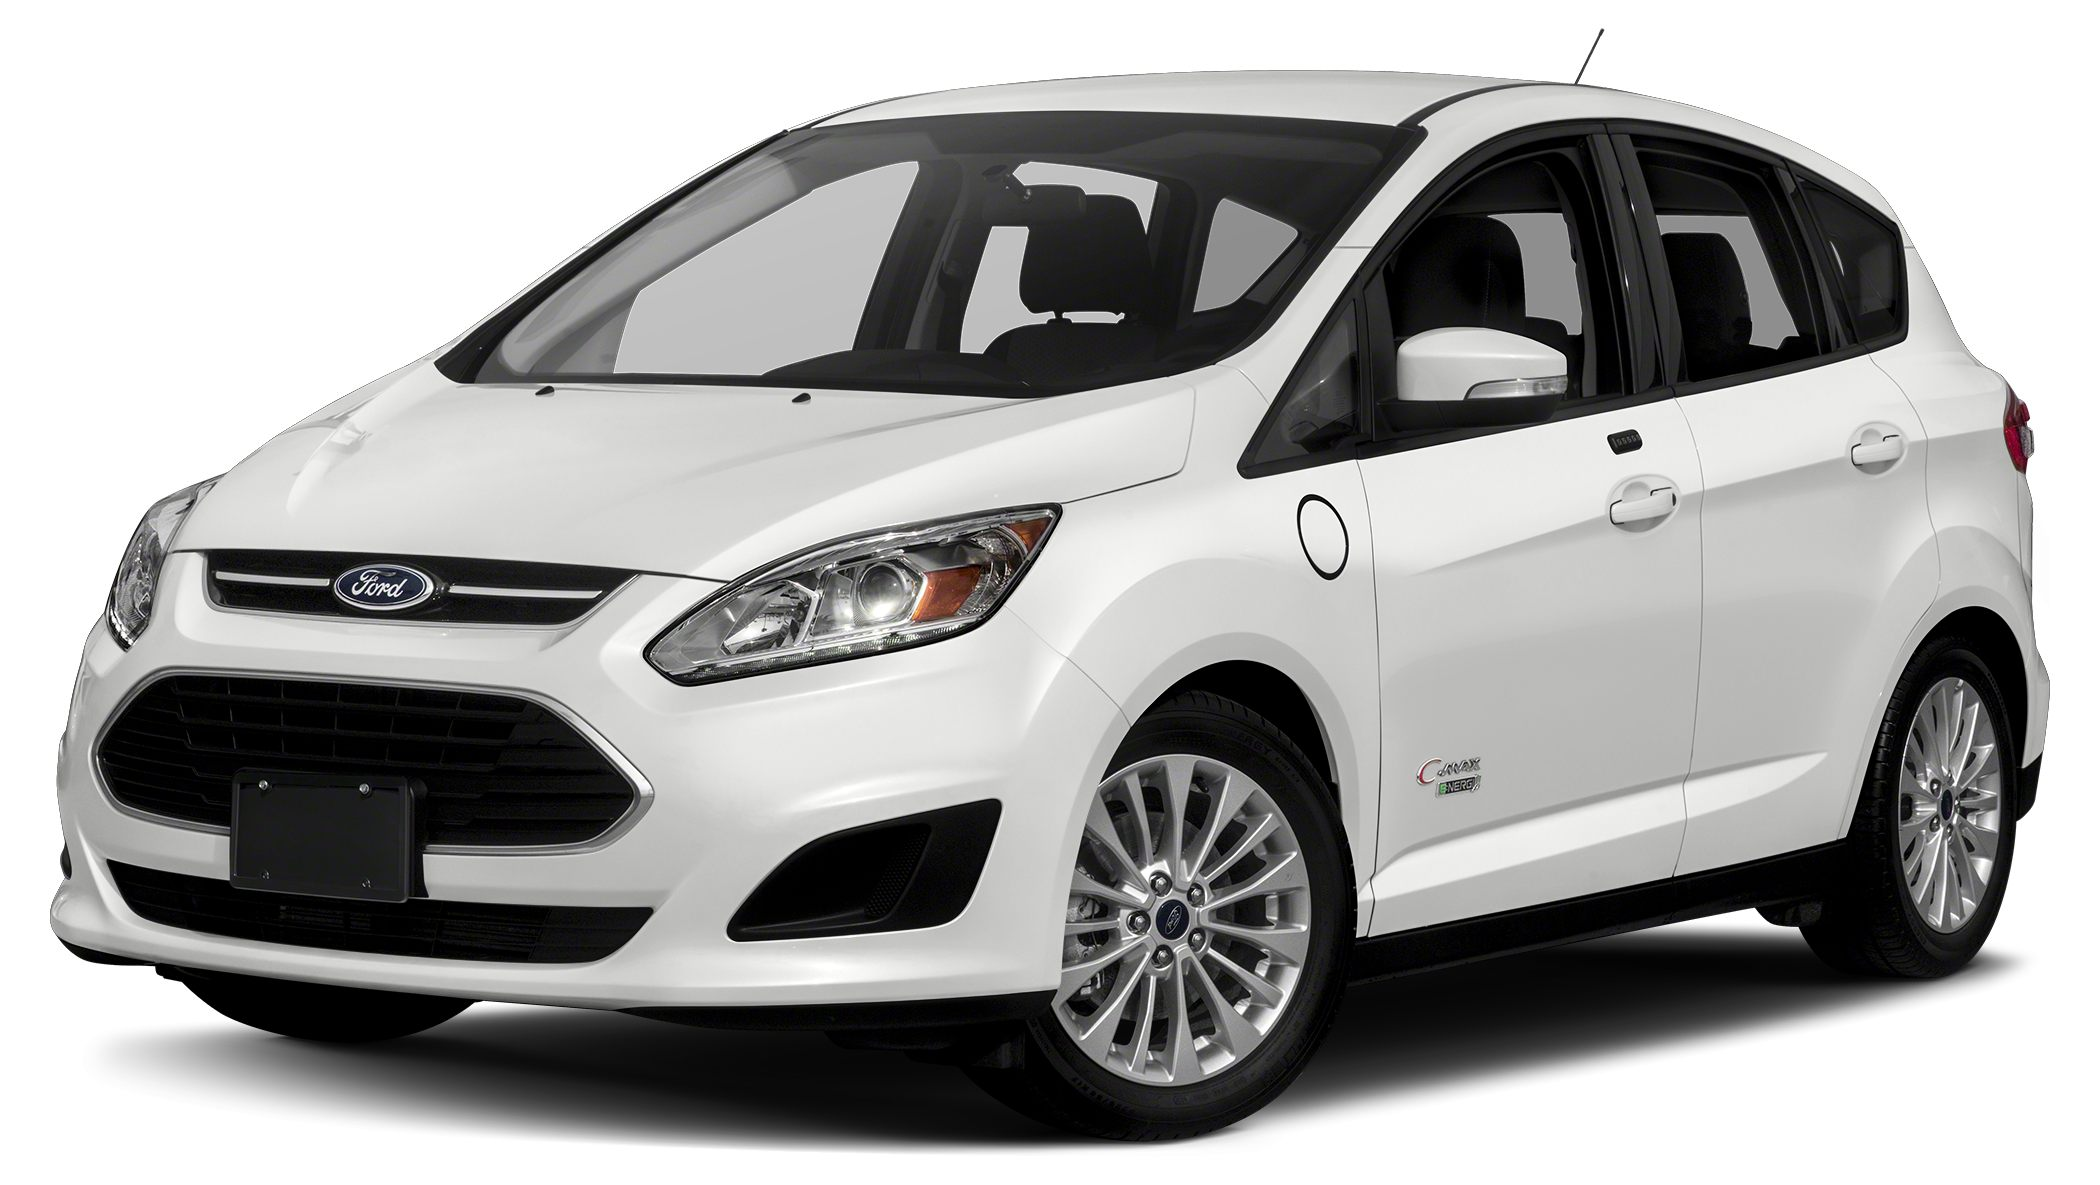 2017 Ford C-Max Energi SE The C-MAX Hybrid and C-MAX Energi plug-in hybrid - the all-new family of